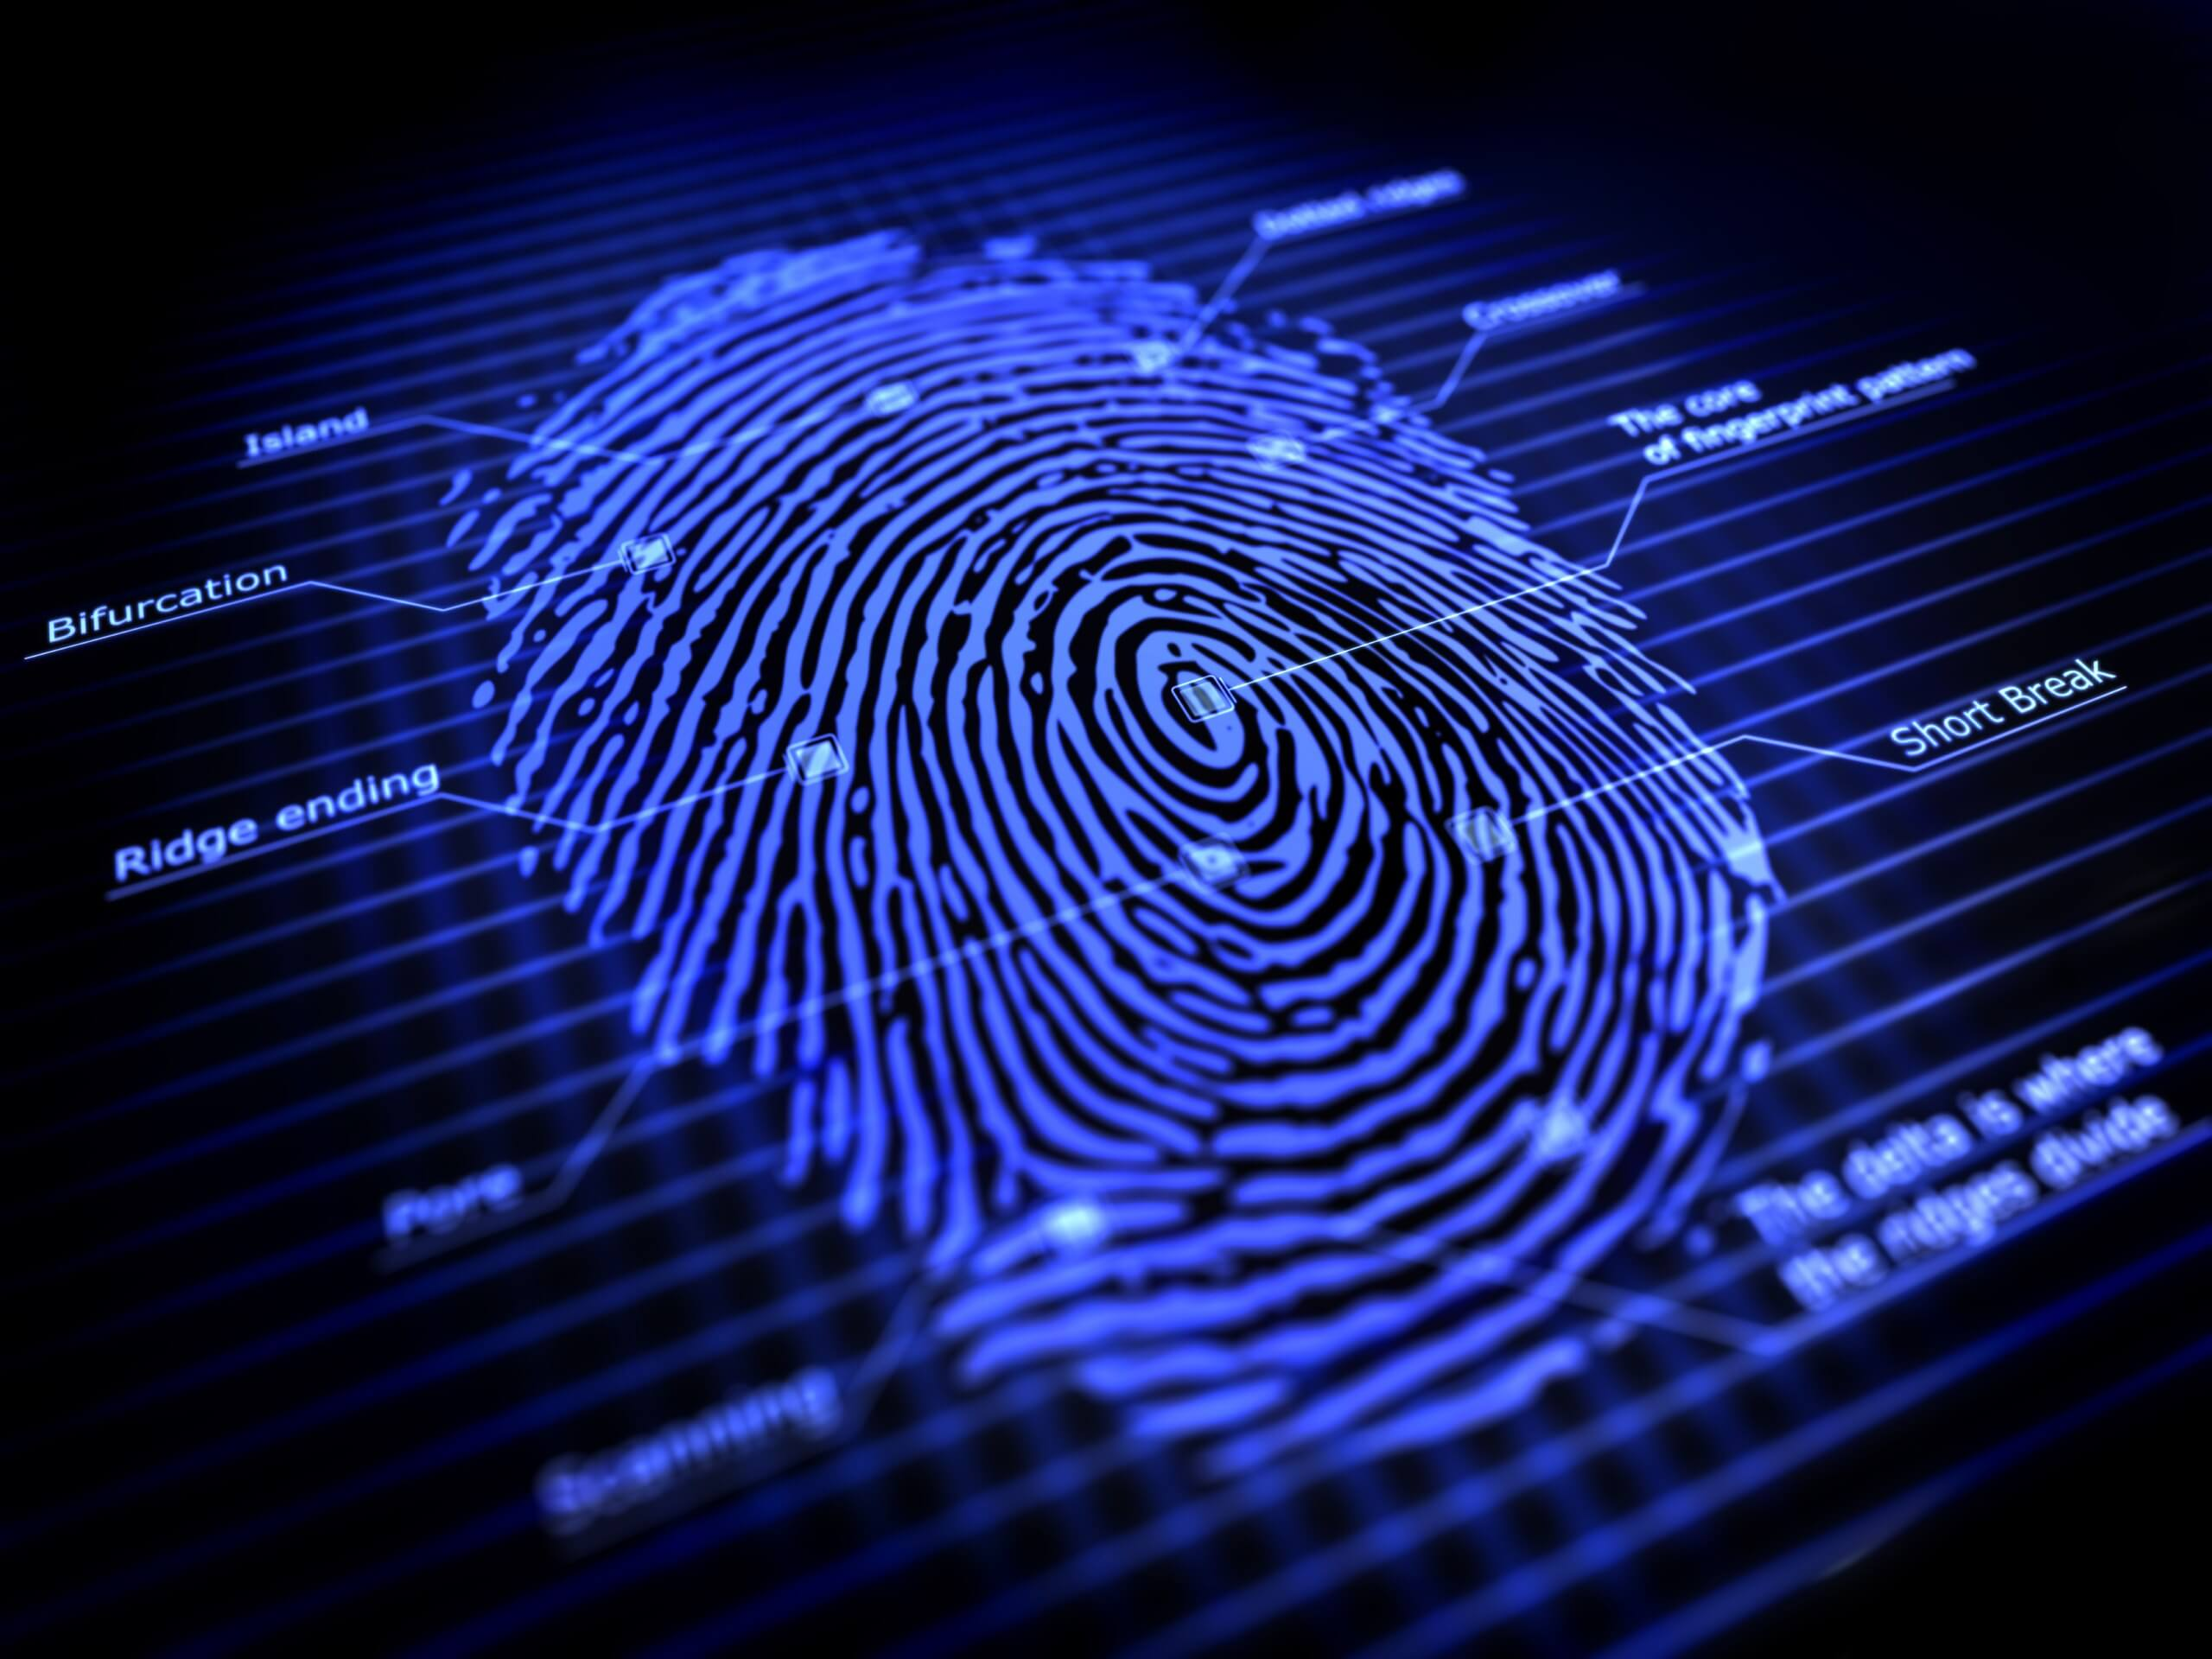 web authentication via biometrics